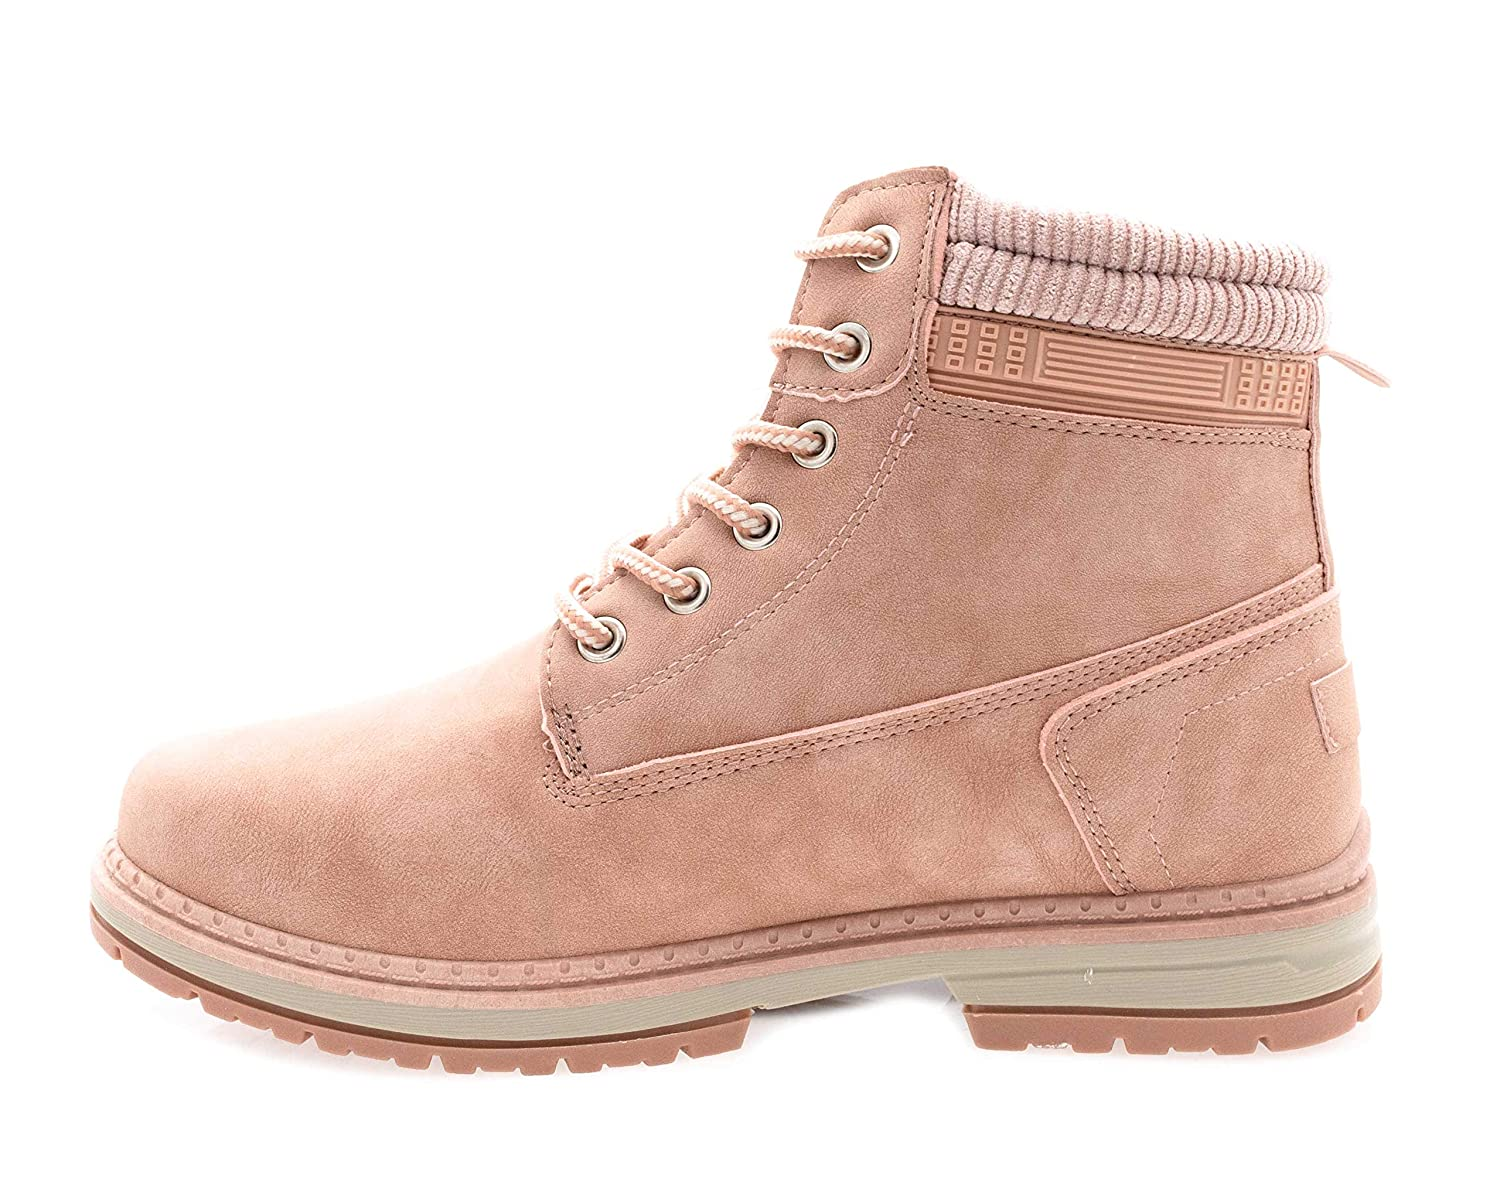 Fashion Shoes Chaussures Boots Montantes Femmes Army